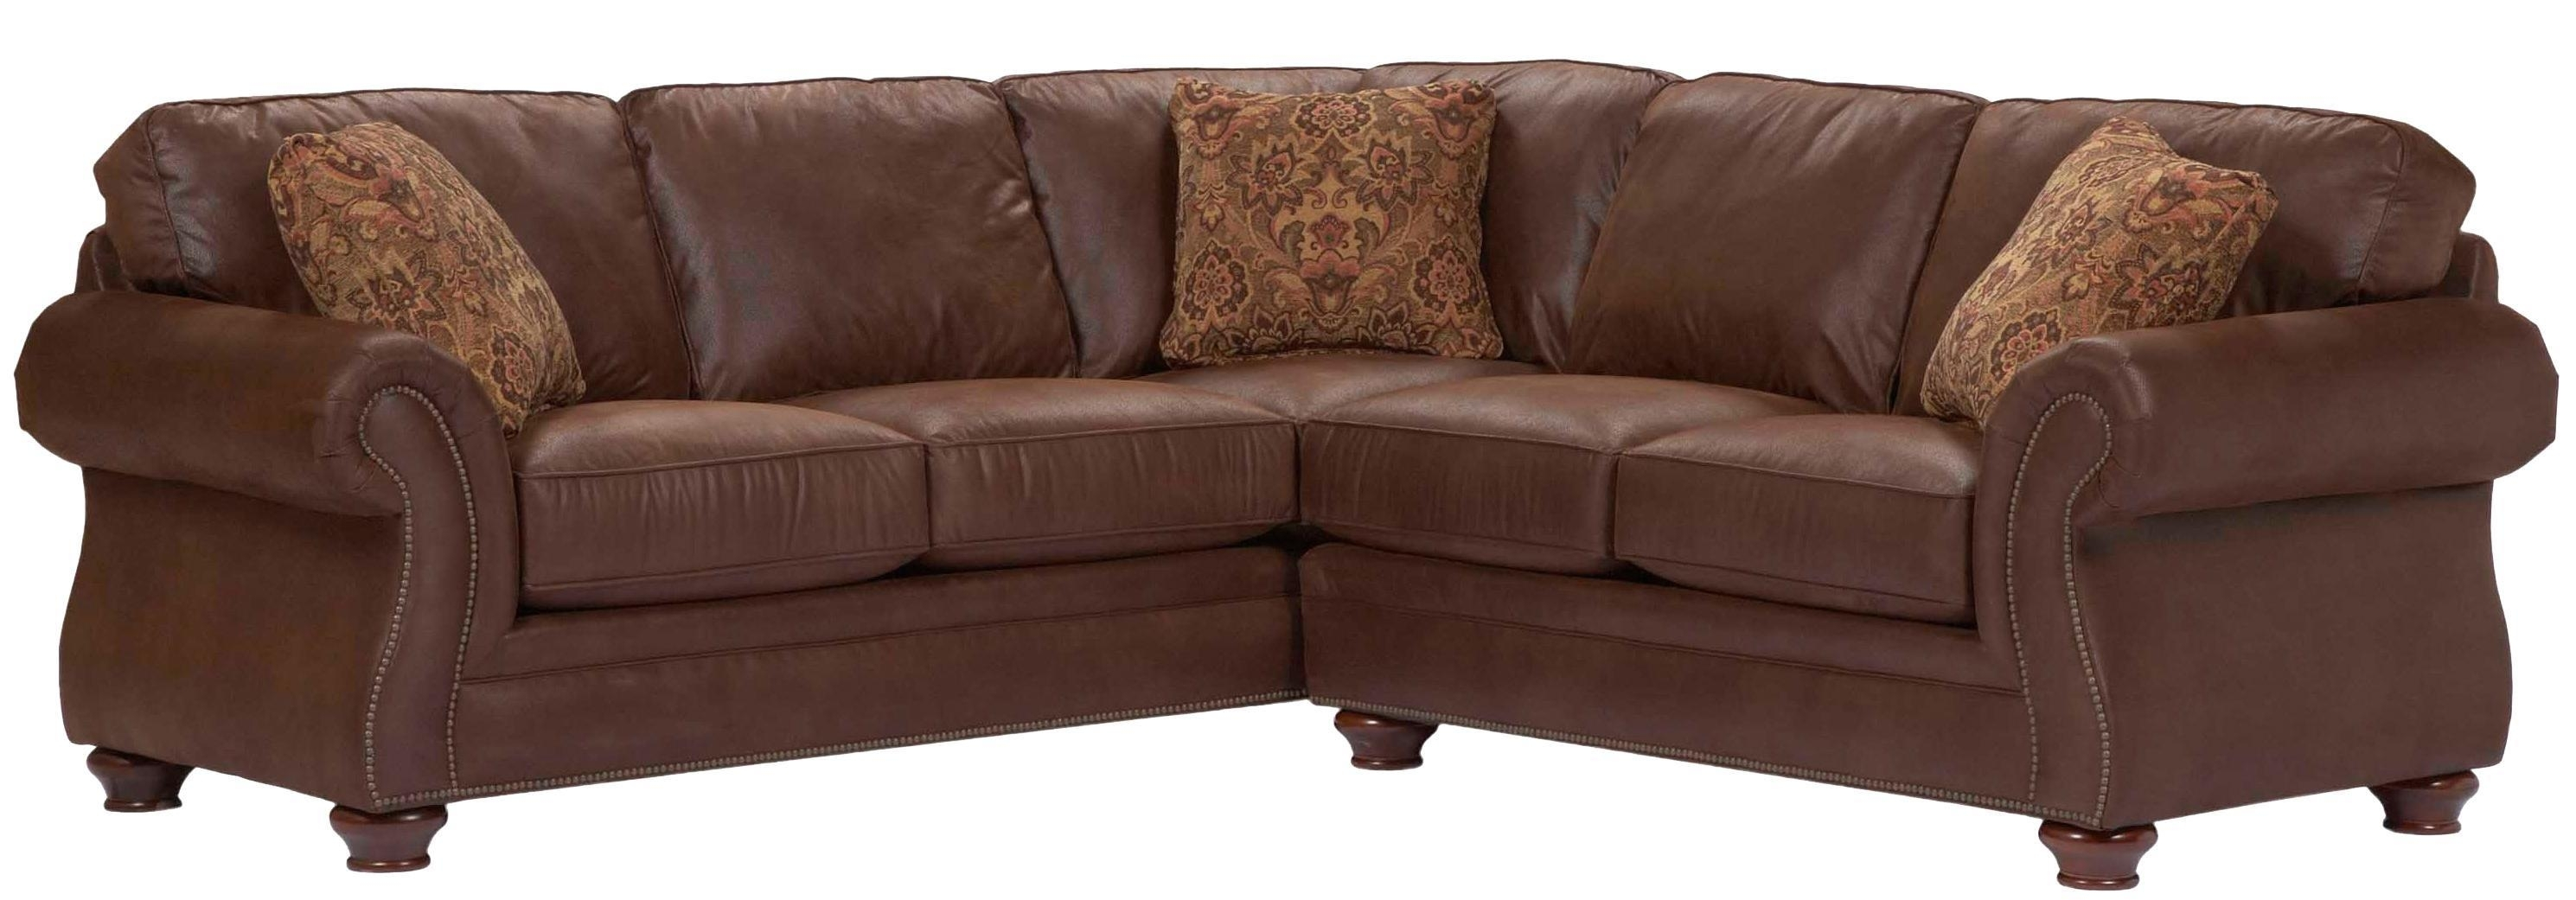 Broyhill Furniture Laramie 2 Piece Corner Sectional Sofa - Ahfa intended for Blaine 4 Piece Sectionals (Image 8 of 30)